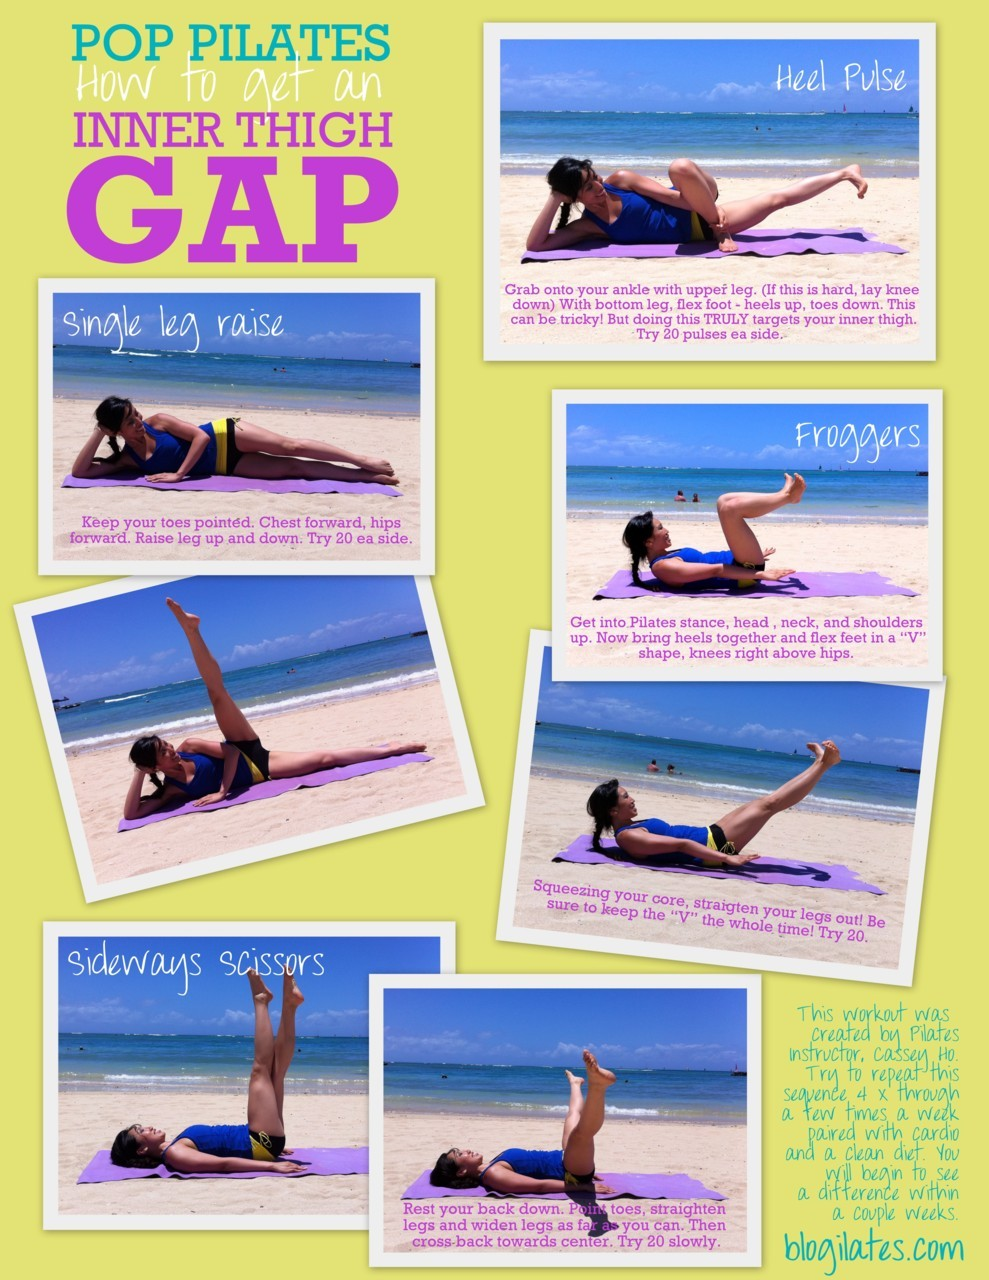 New printable! How to get an inner thigh gap in 4 easy moves! This is one of the most highly requested things I am asked about, so here you go! Print, share, and sweat! I'm going to the beach now to film this. Video coming soon!!! <3 Cassey